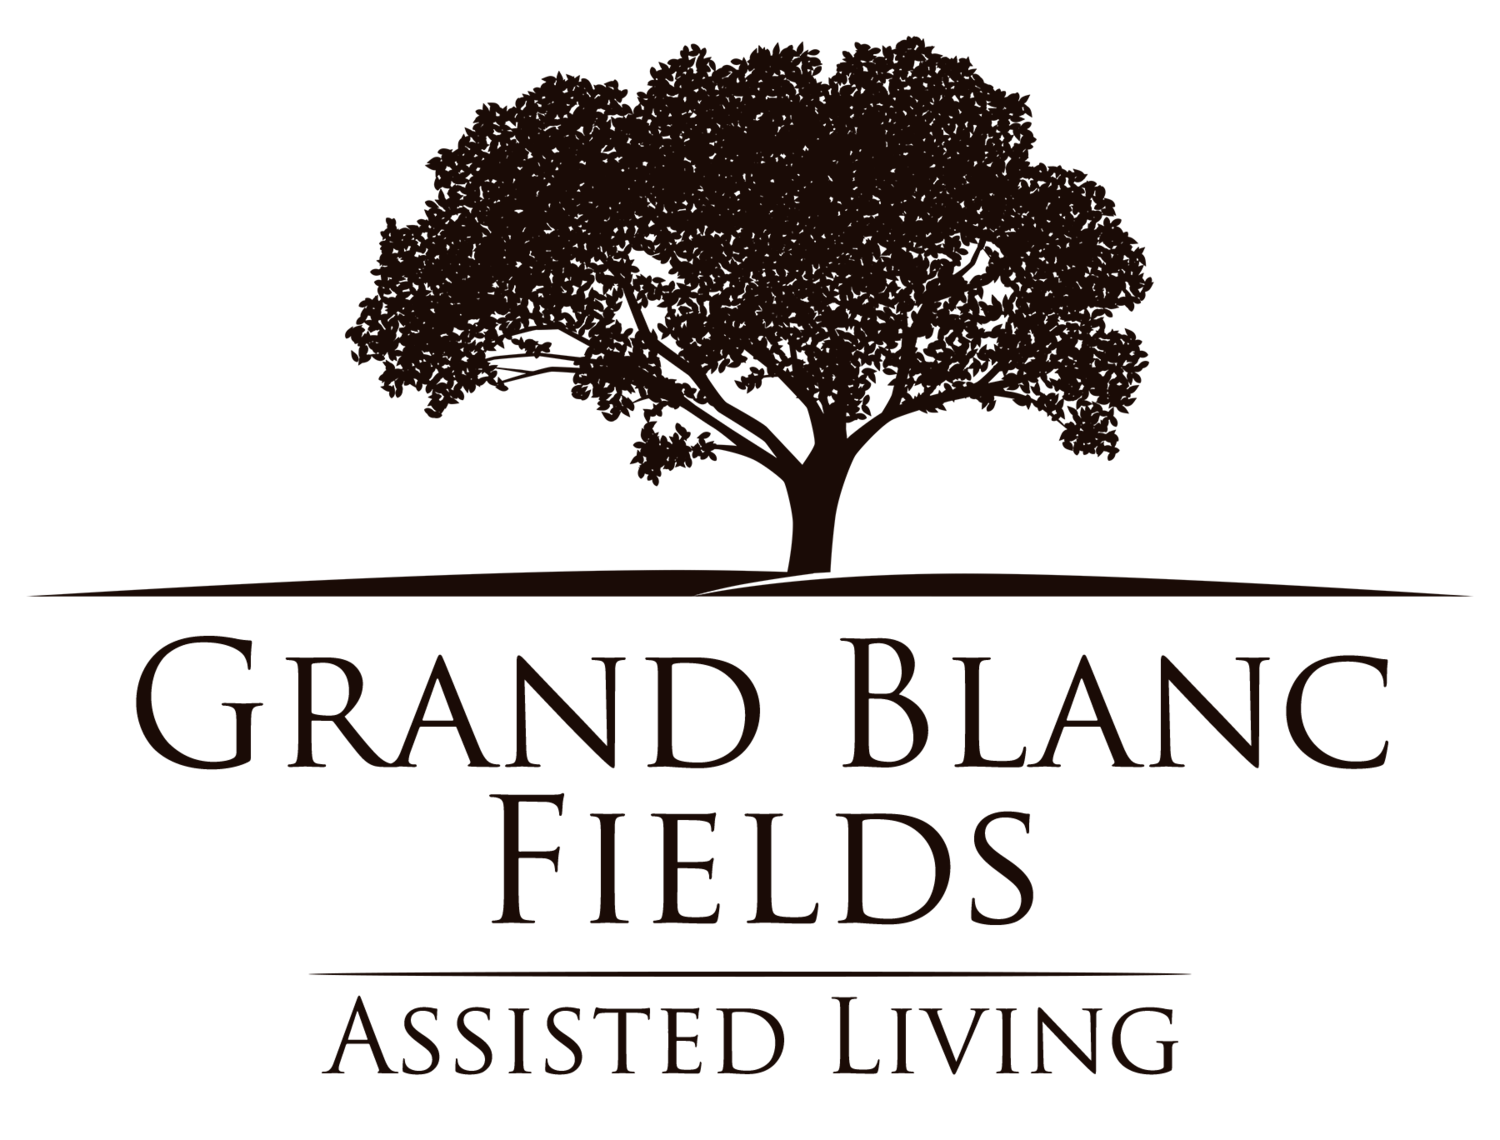 Grand Blanc Fields Assisted Living